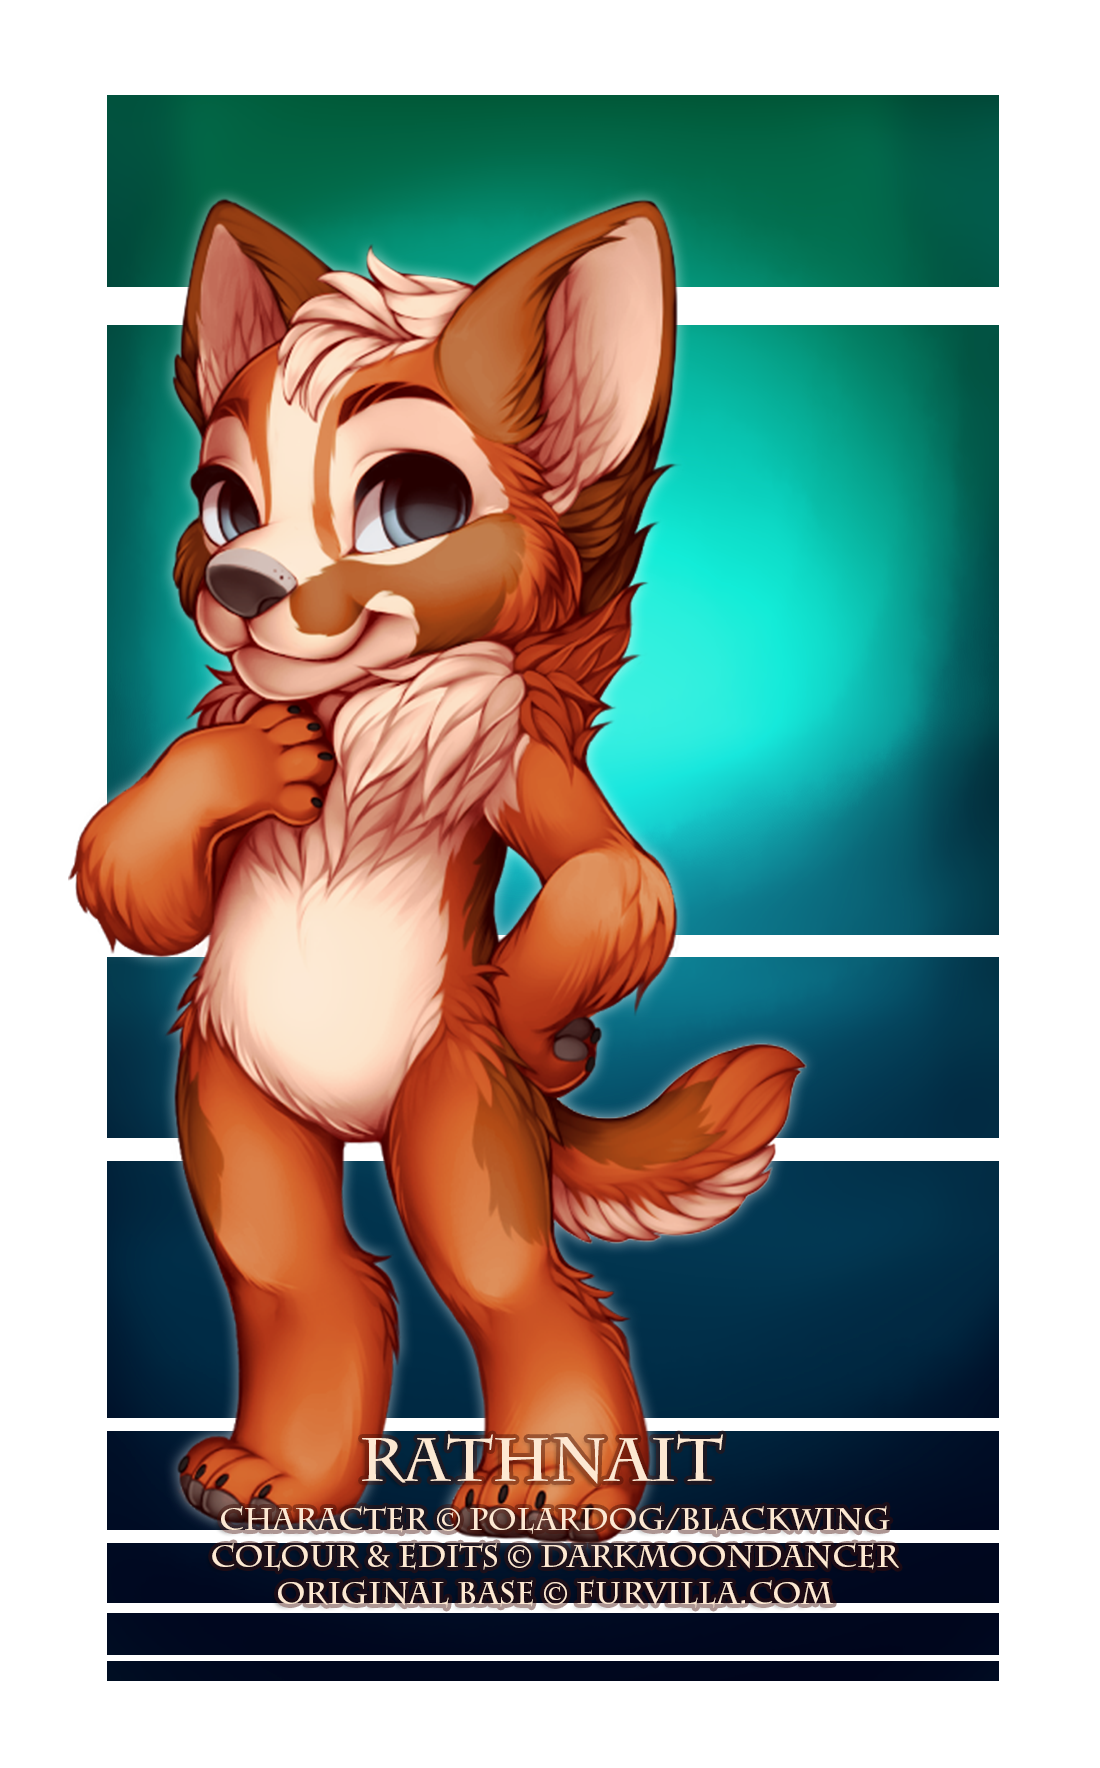 This cutie is Rathnait, owned by Polardog/Blackwing. I had a lot of fun colouring her as well as editting her ears, headfluff and tail!